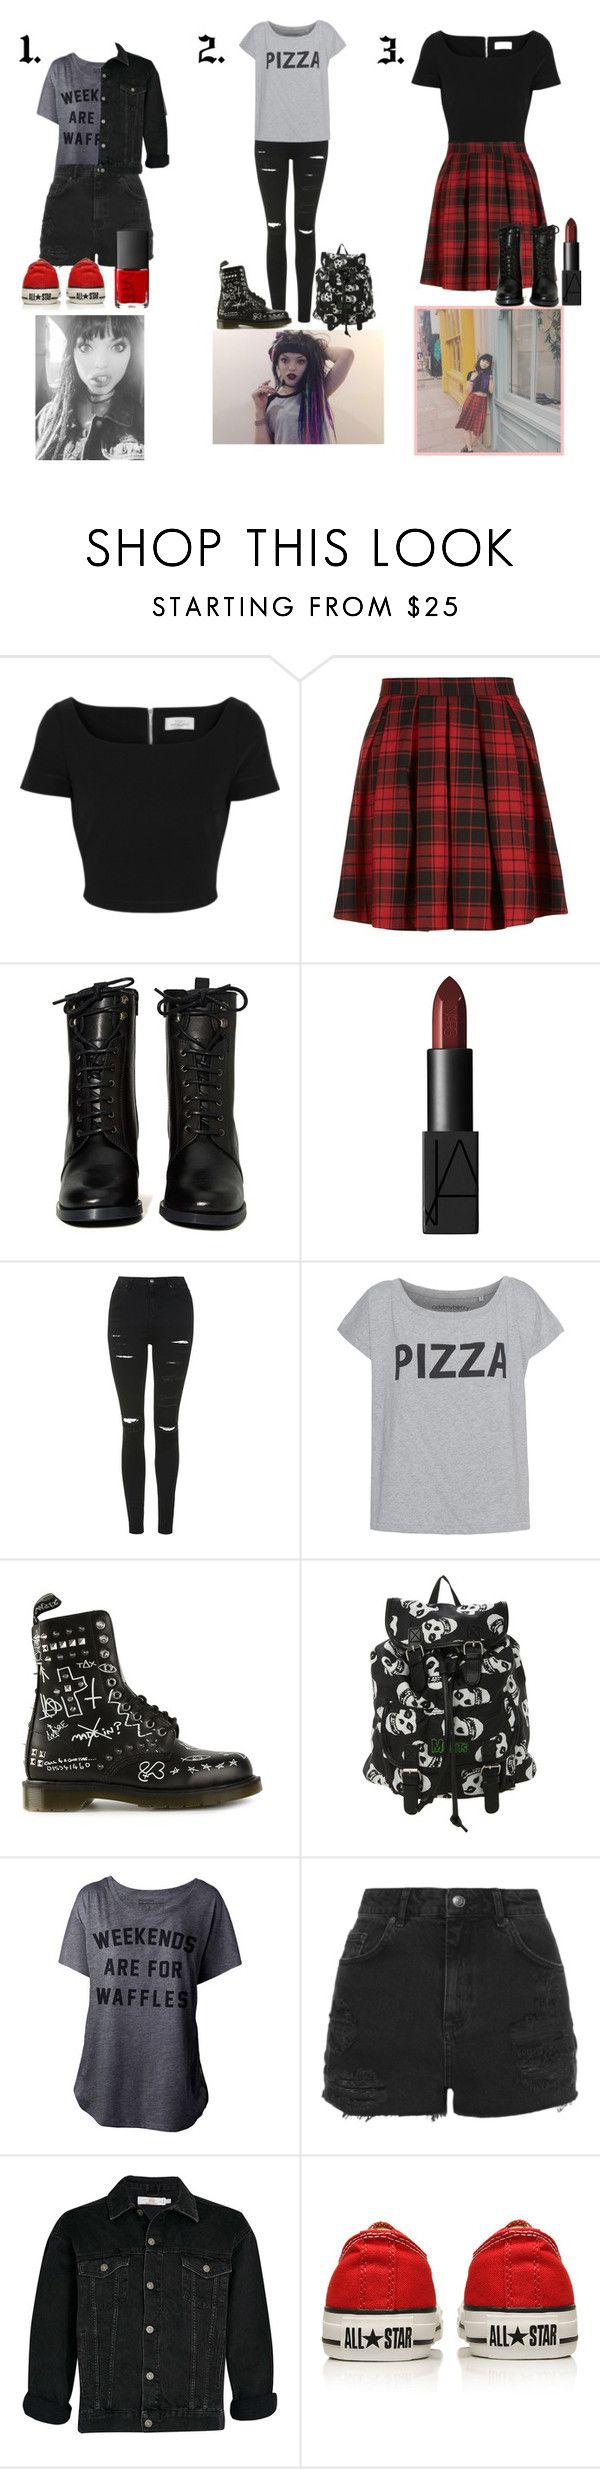 """""""Rena Lovelis Inspired Outfits."""" by sophie-irwin ❤ liked on Polyvore featuring Preen, Report, NARS Cosmetics, Topshop, Dr. Martens, Converse, GetTheLook, music, Inspired and heyviolet"""